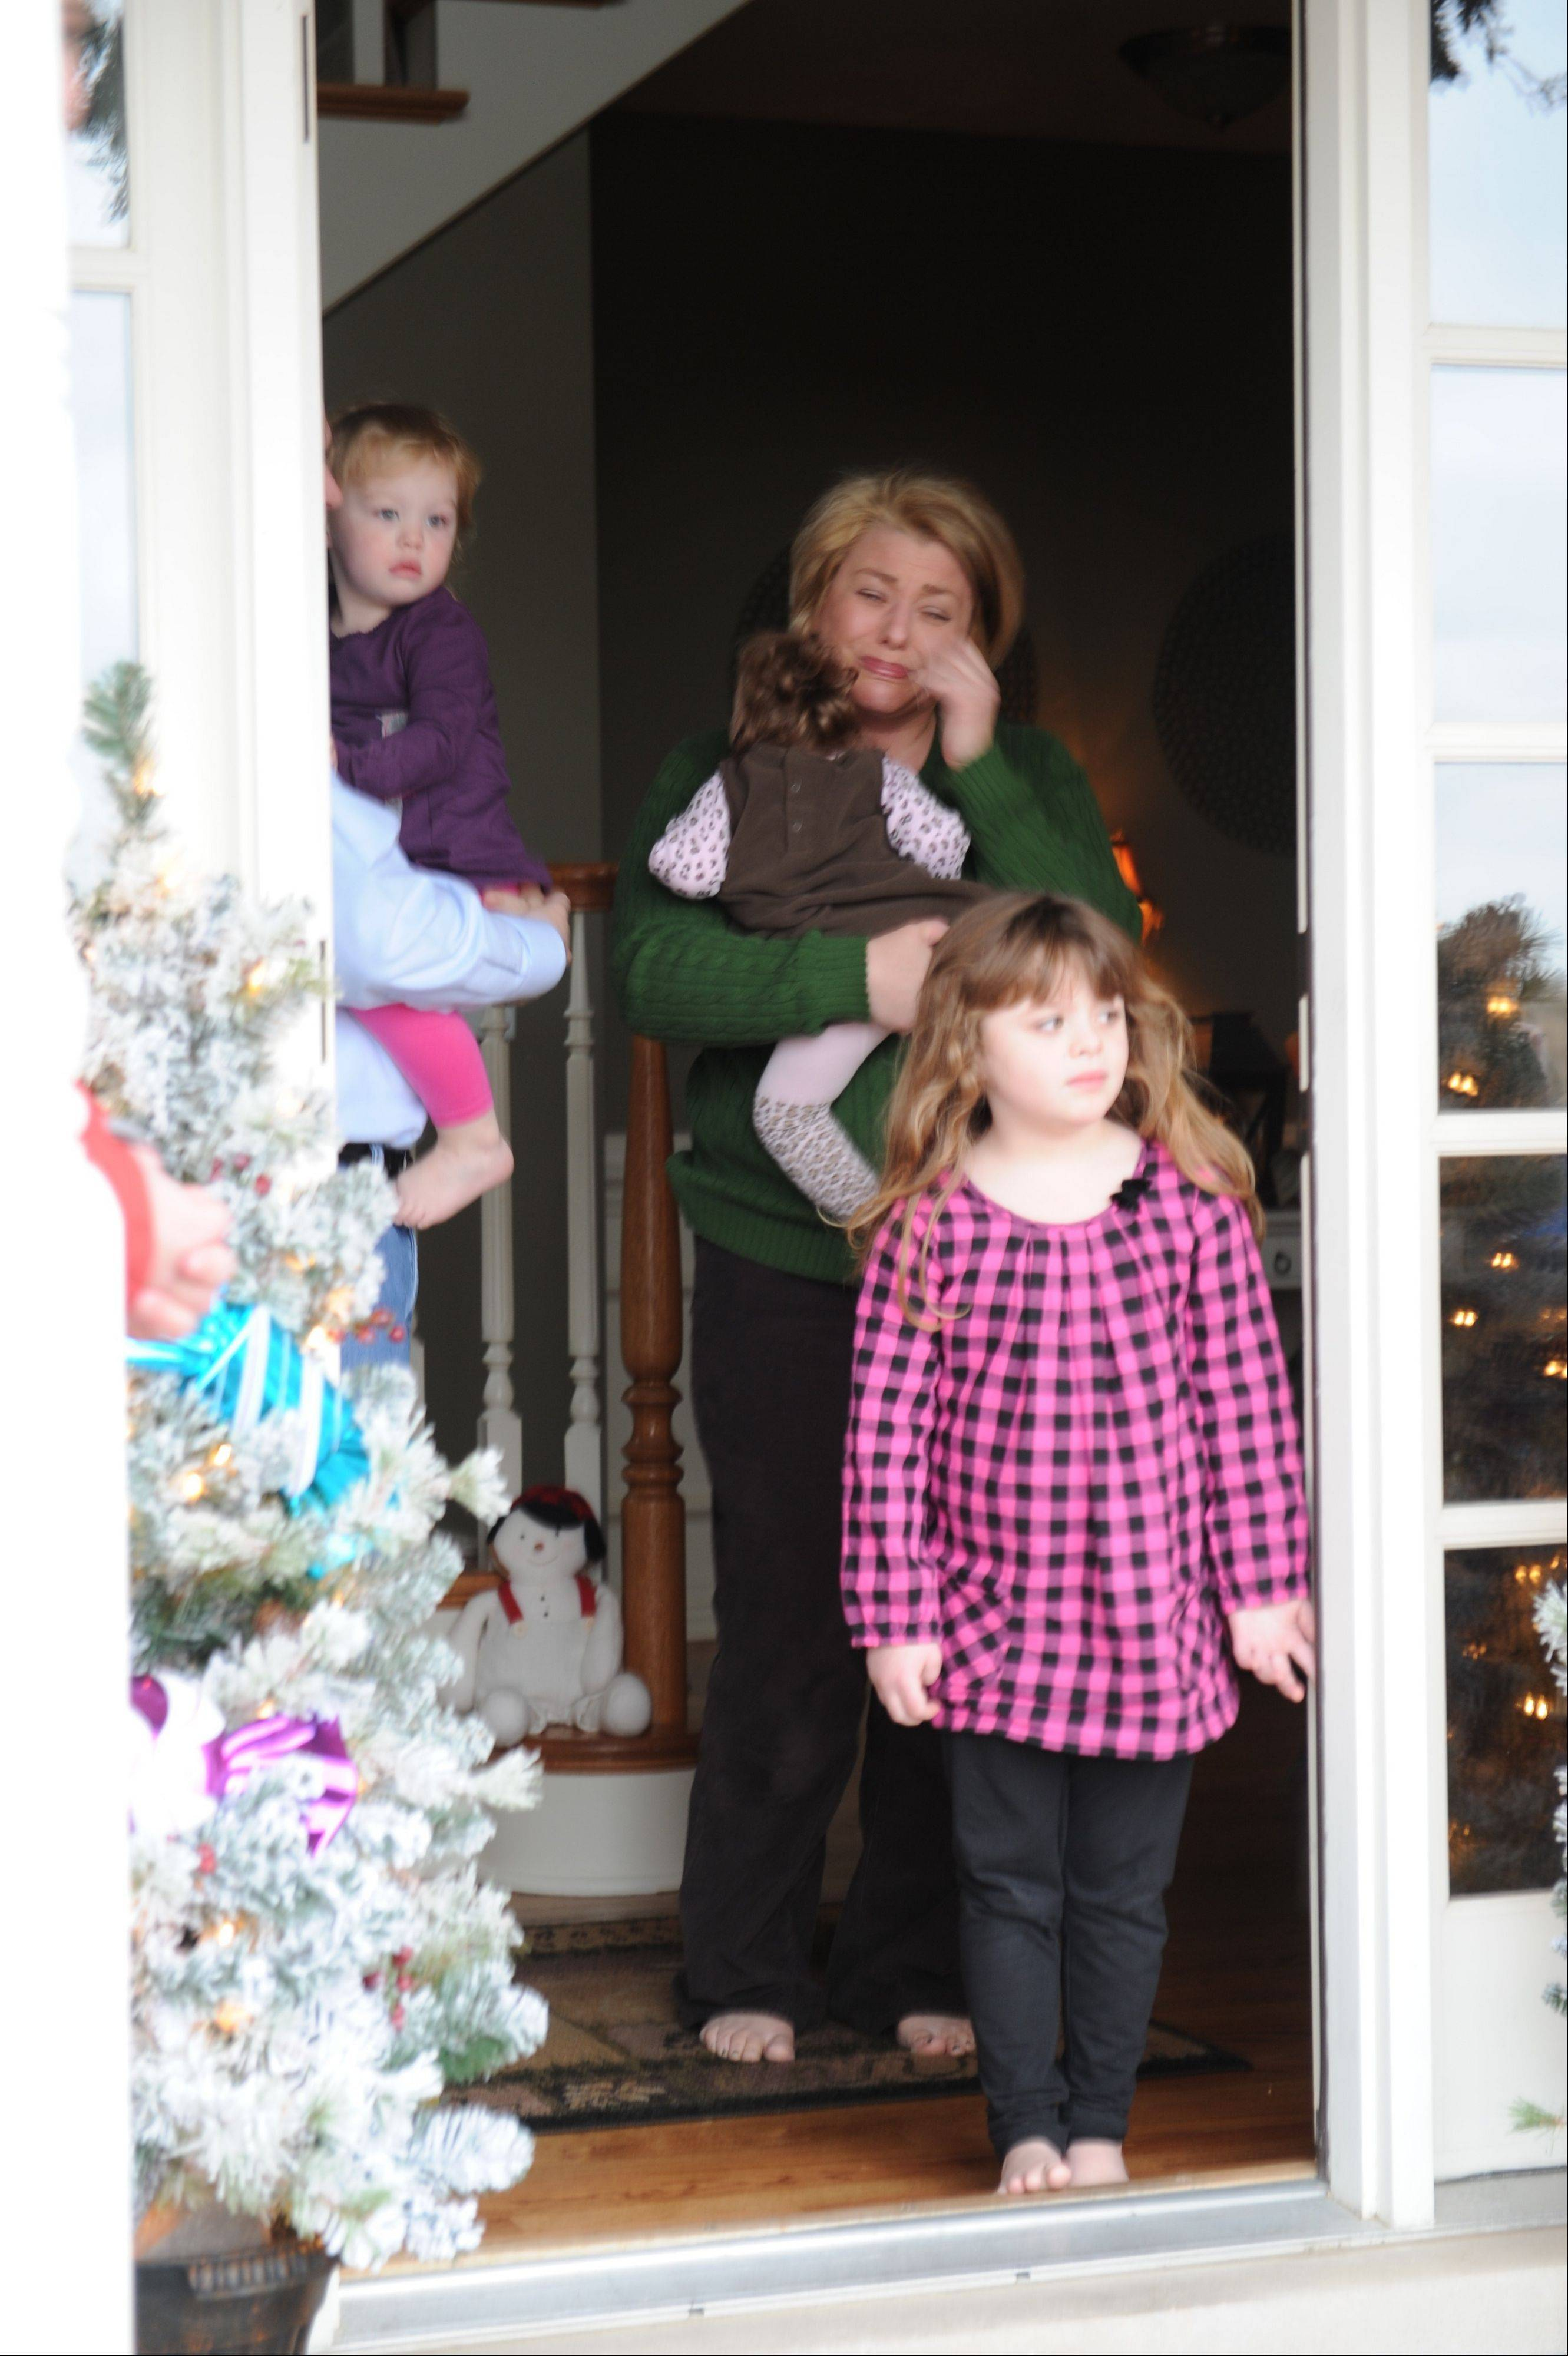 Luellen Seals tears up as she opens her door Friday afternoon to find about 60 members of her local church with a surprise gift for her 2-year-old daughter, Meagan.